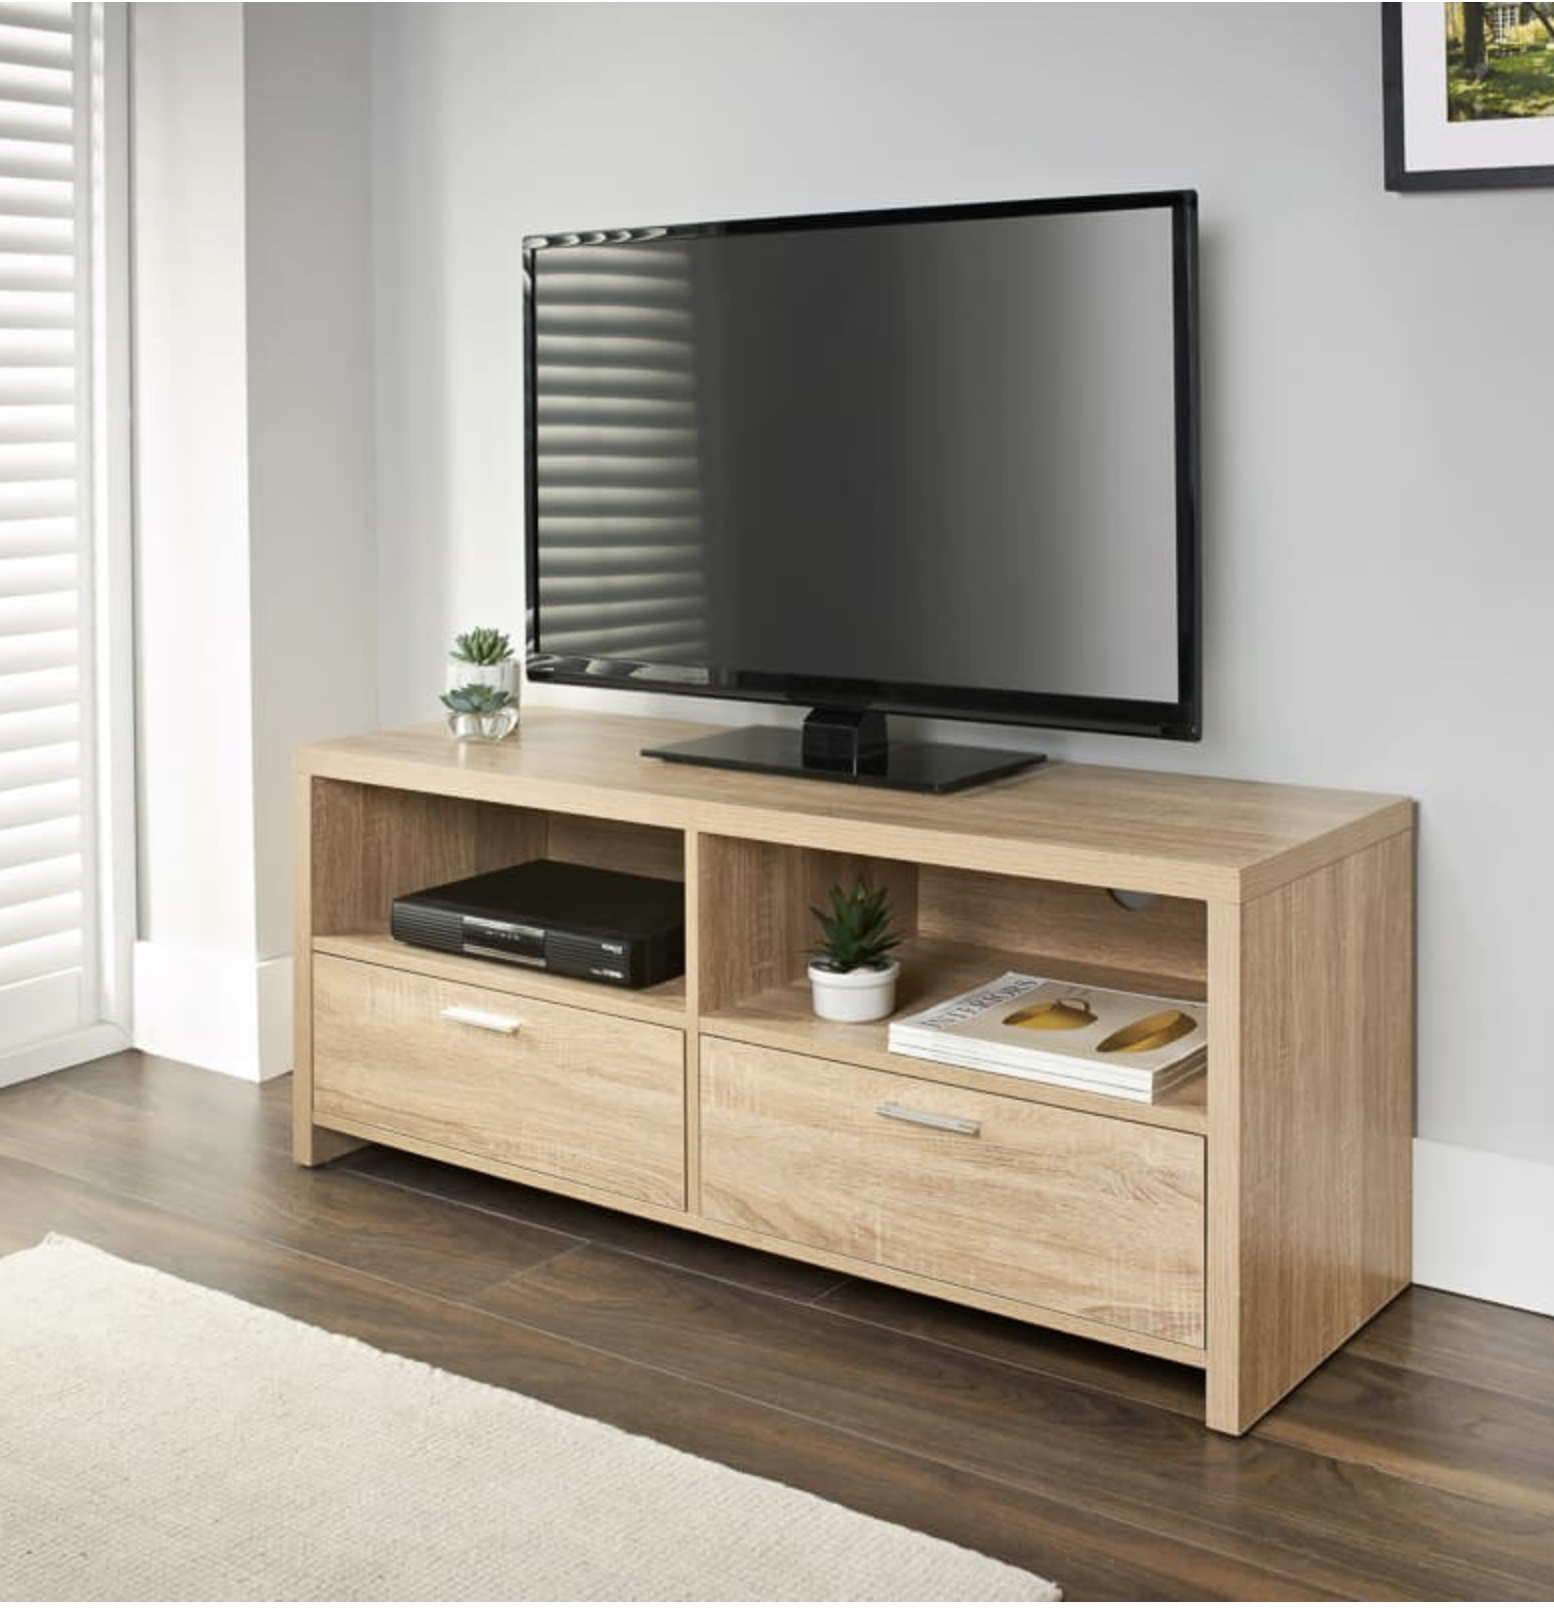 b&m stores furniture tv unit